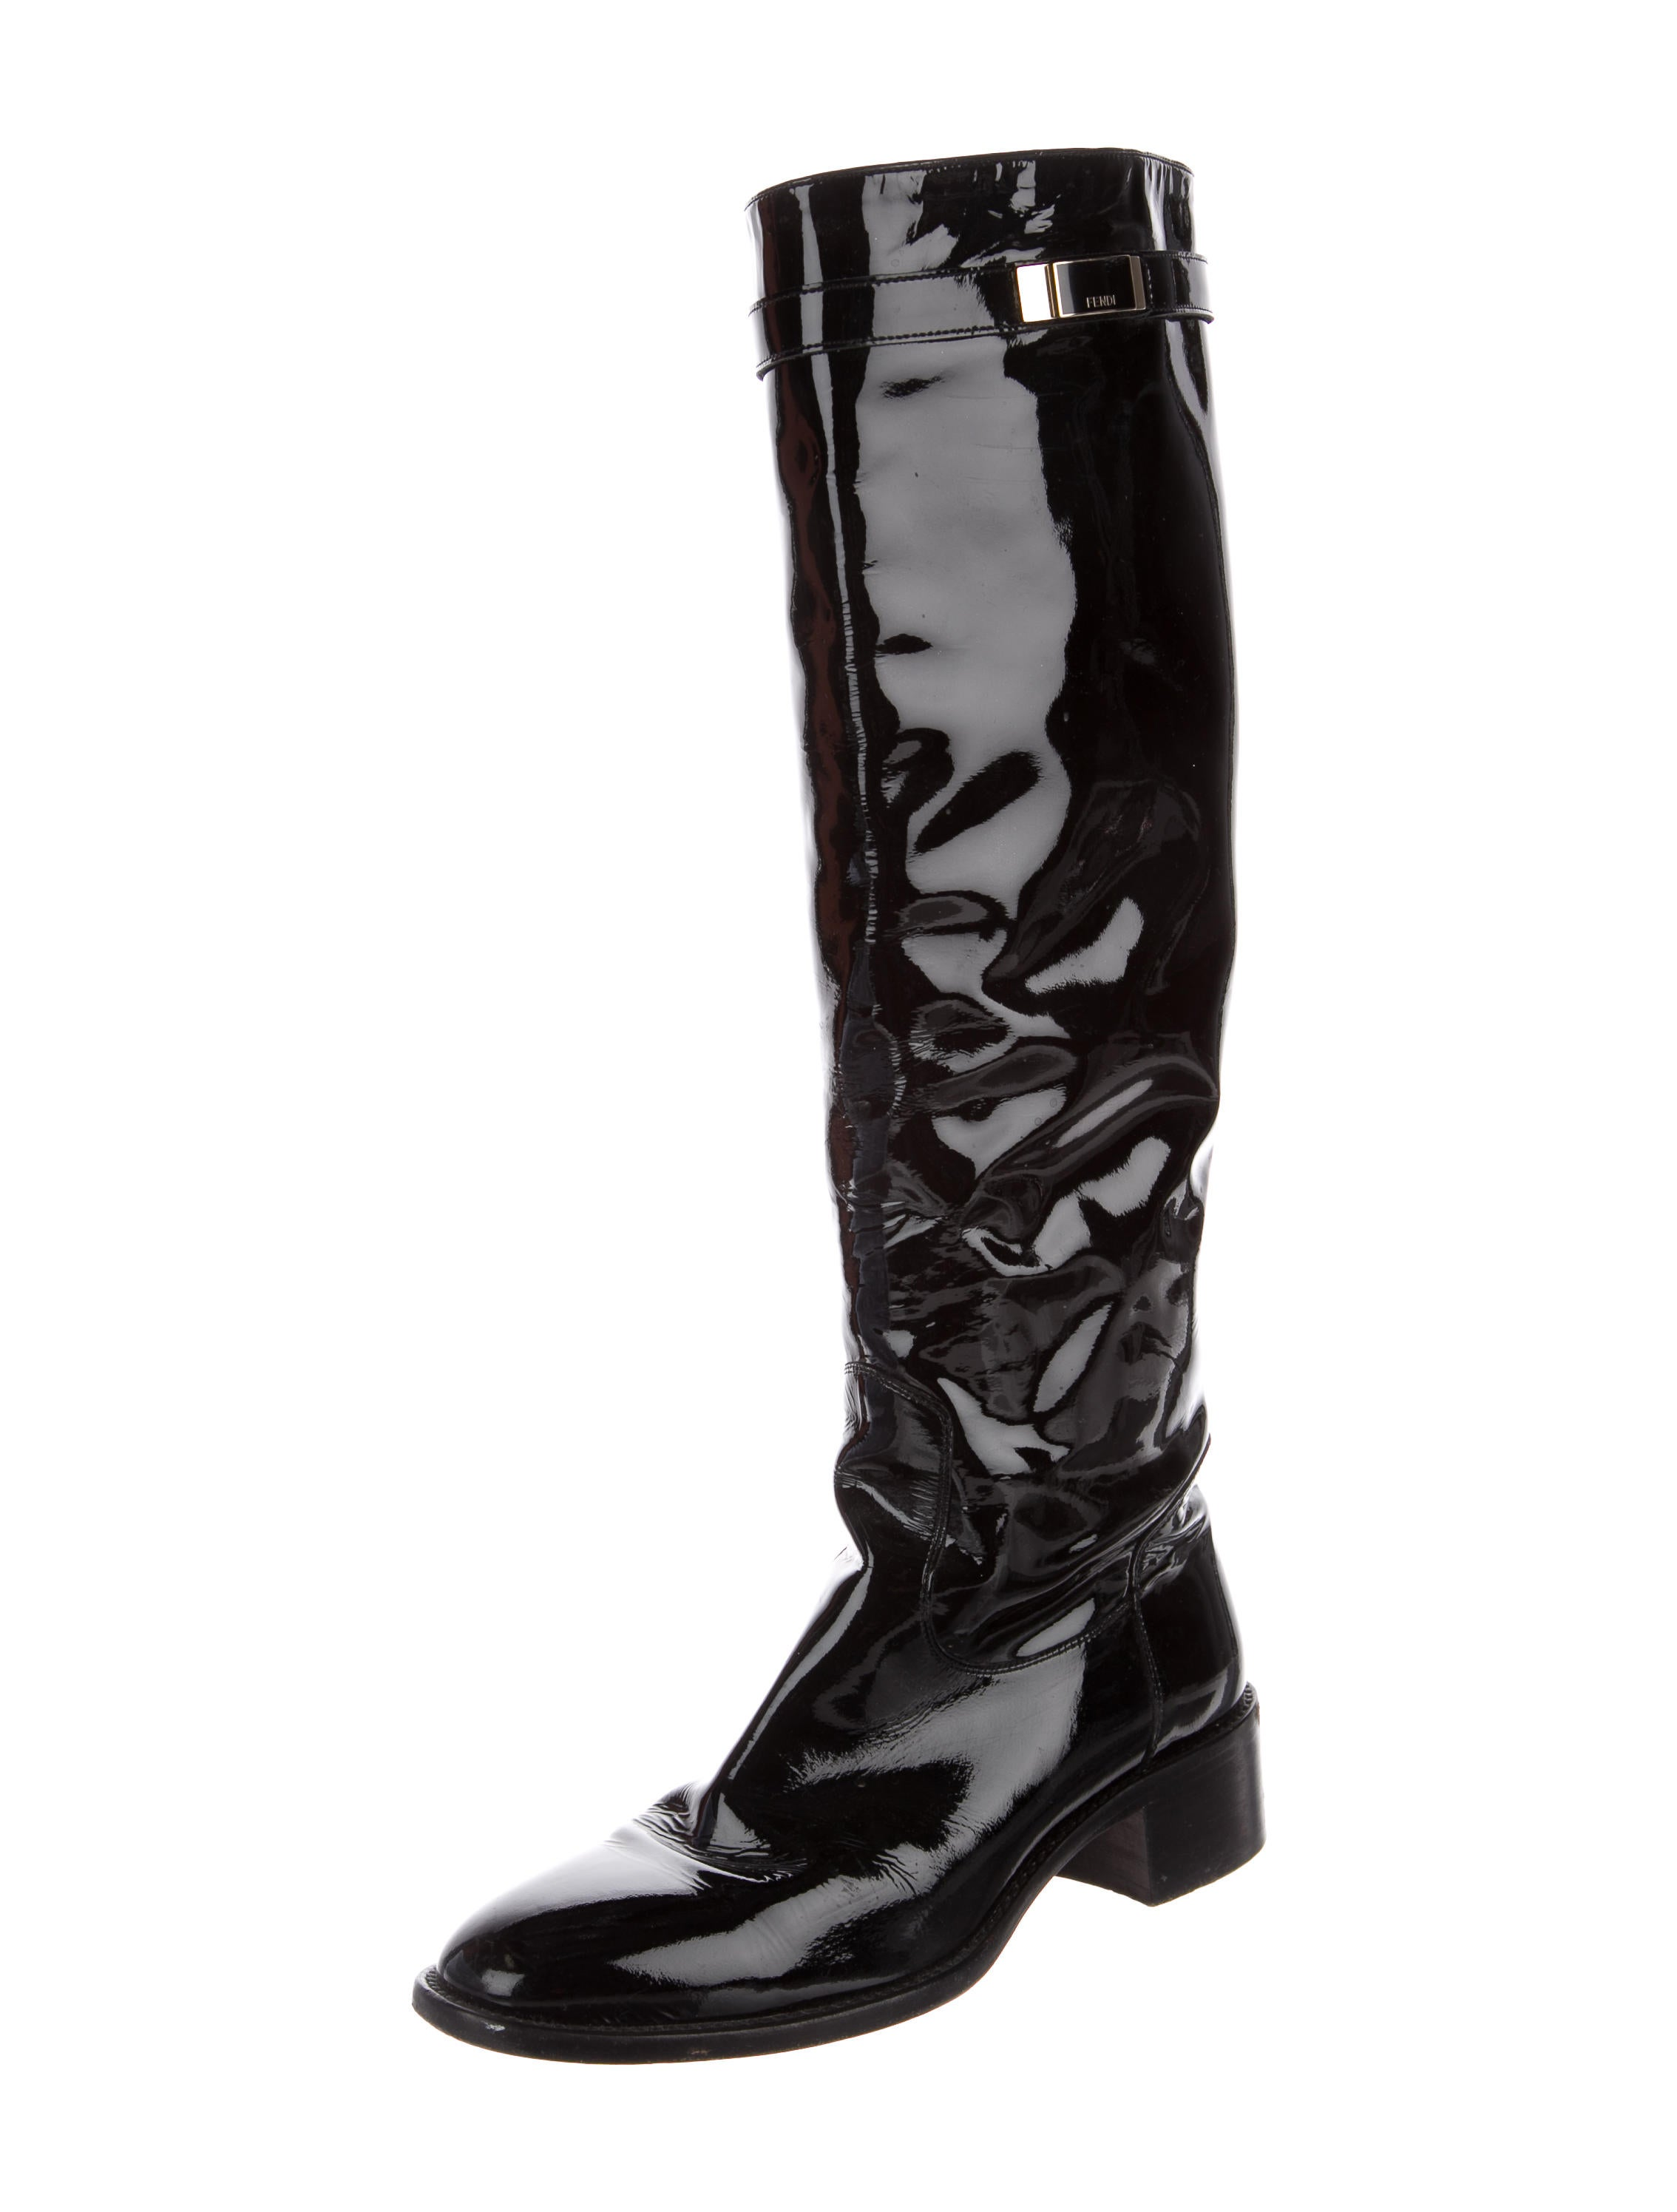 fendi patent leather knee high boots shoes fen64325